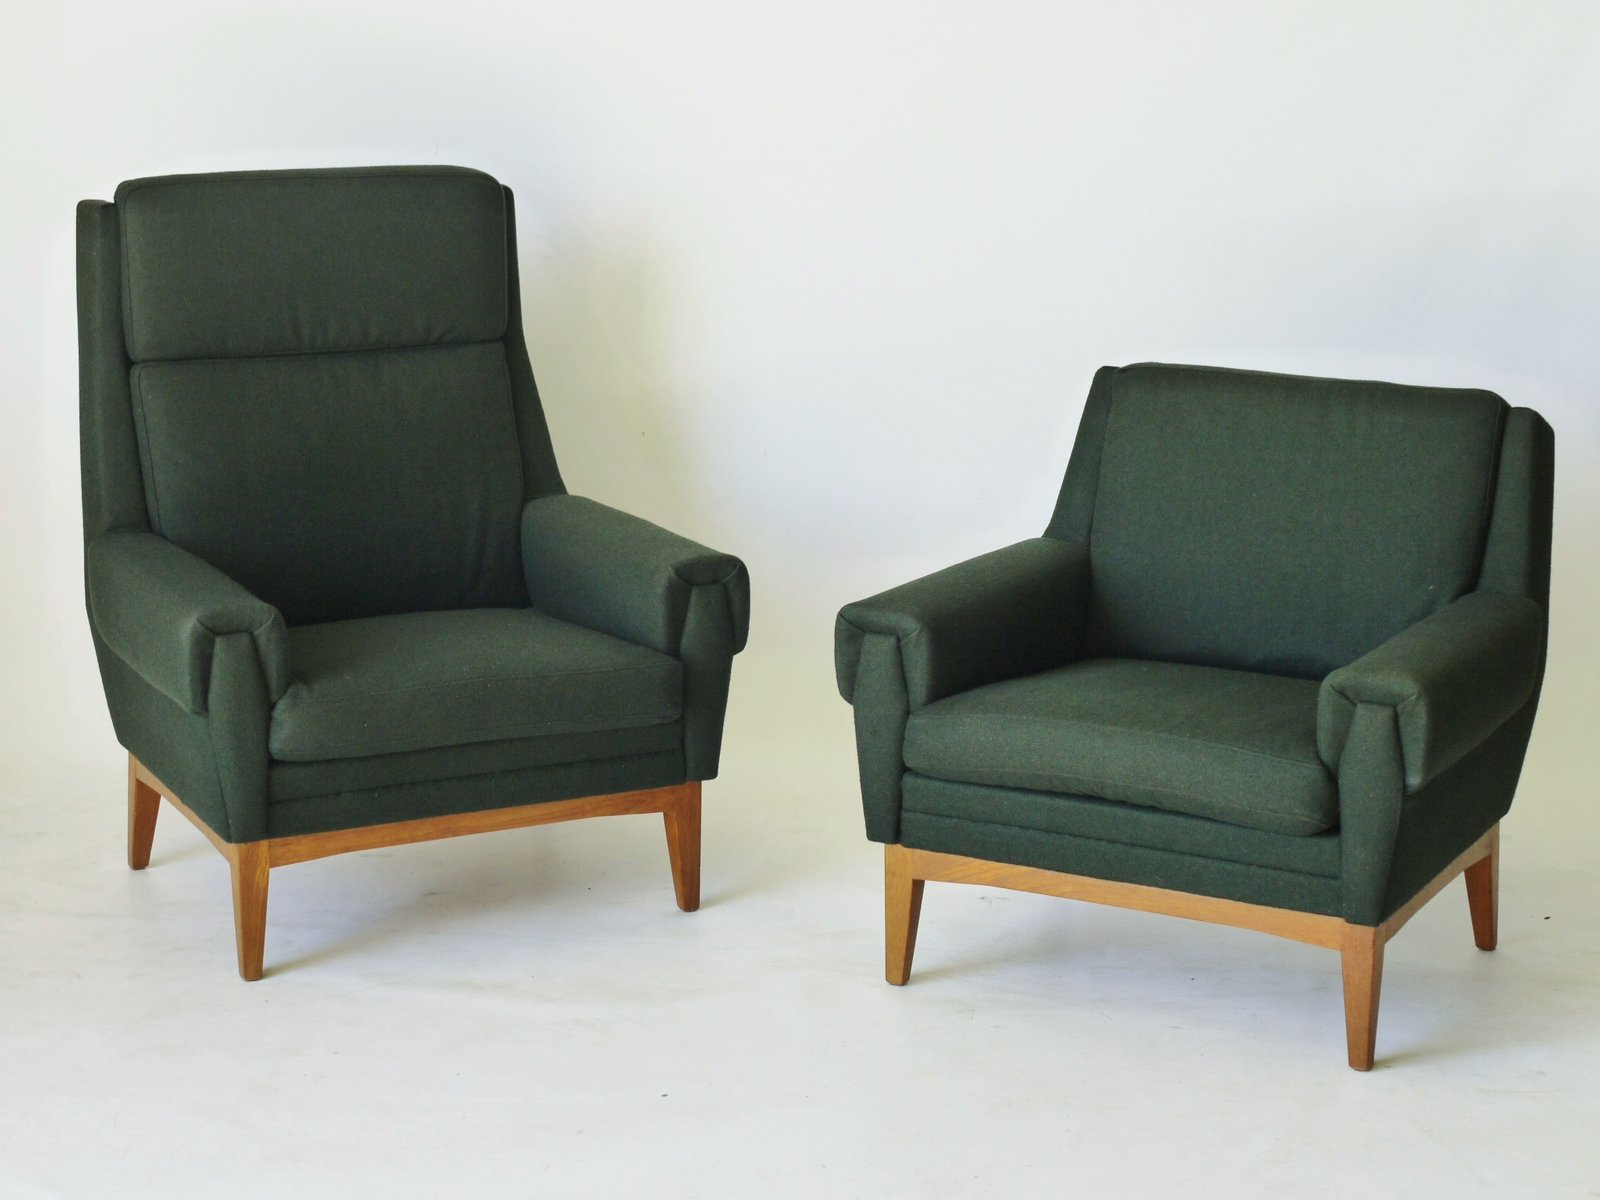 Mid century armchairs 1960s set of 2 for sale at pamono for 2 armchairs for sale